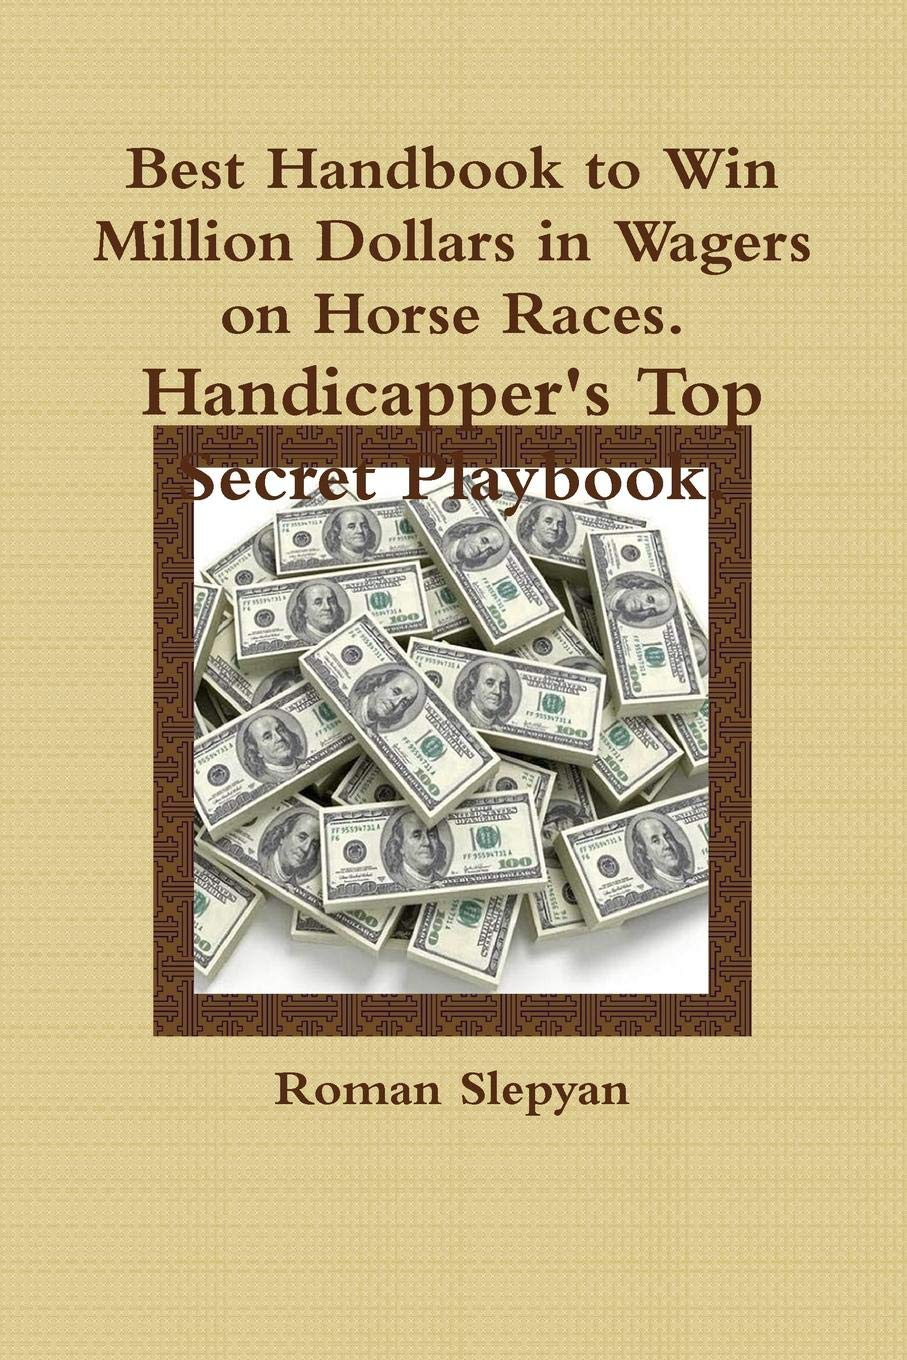 Best Handbook to Win Million Dollars in Wagers on Horse Races